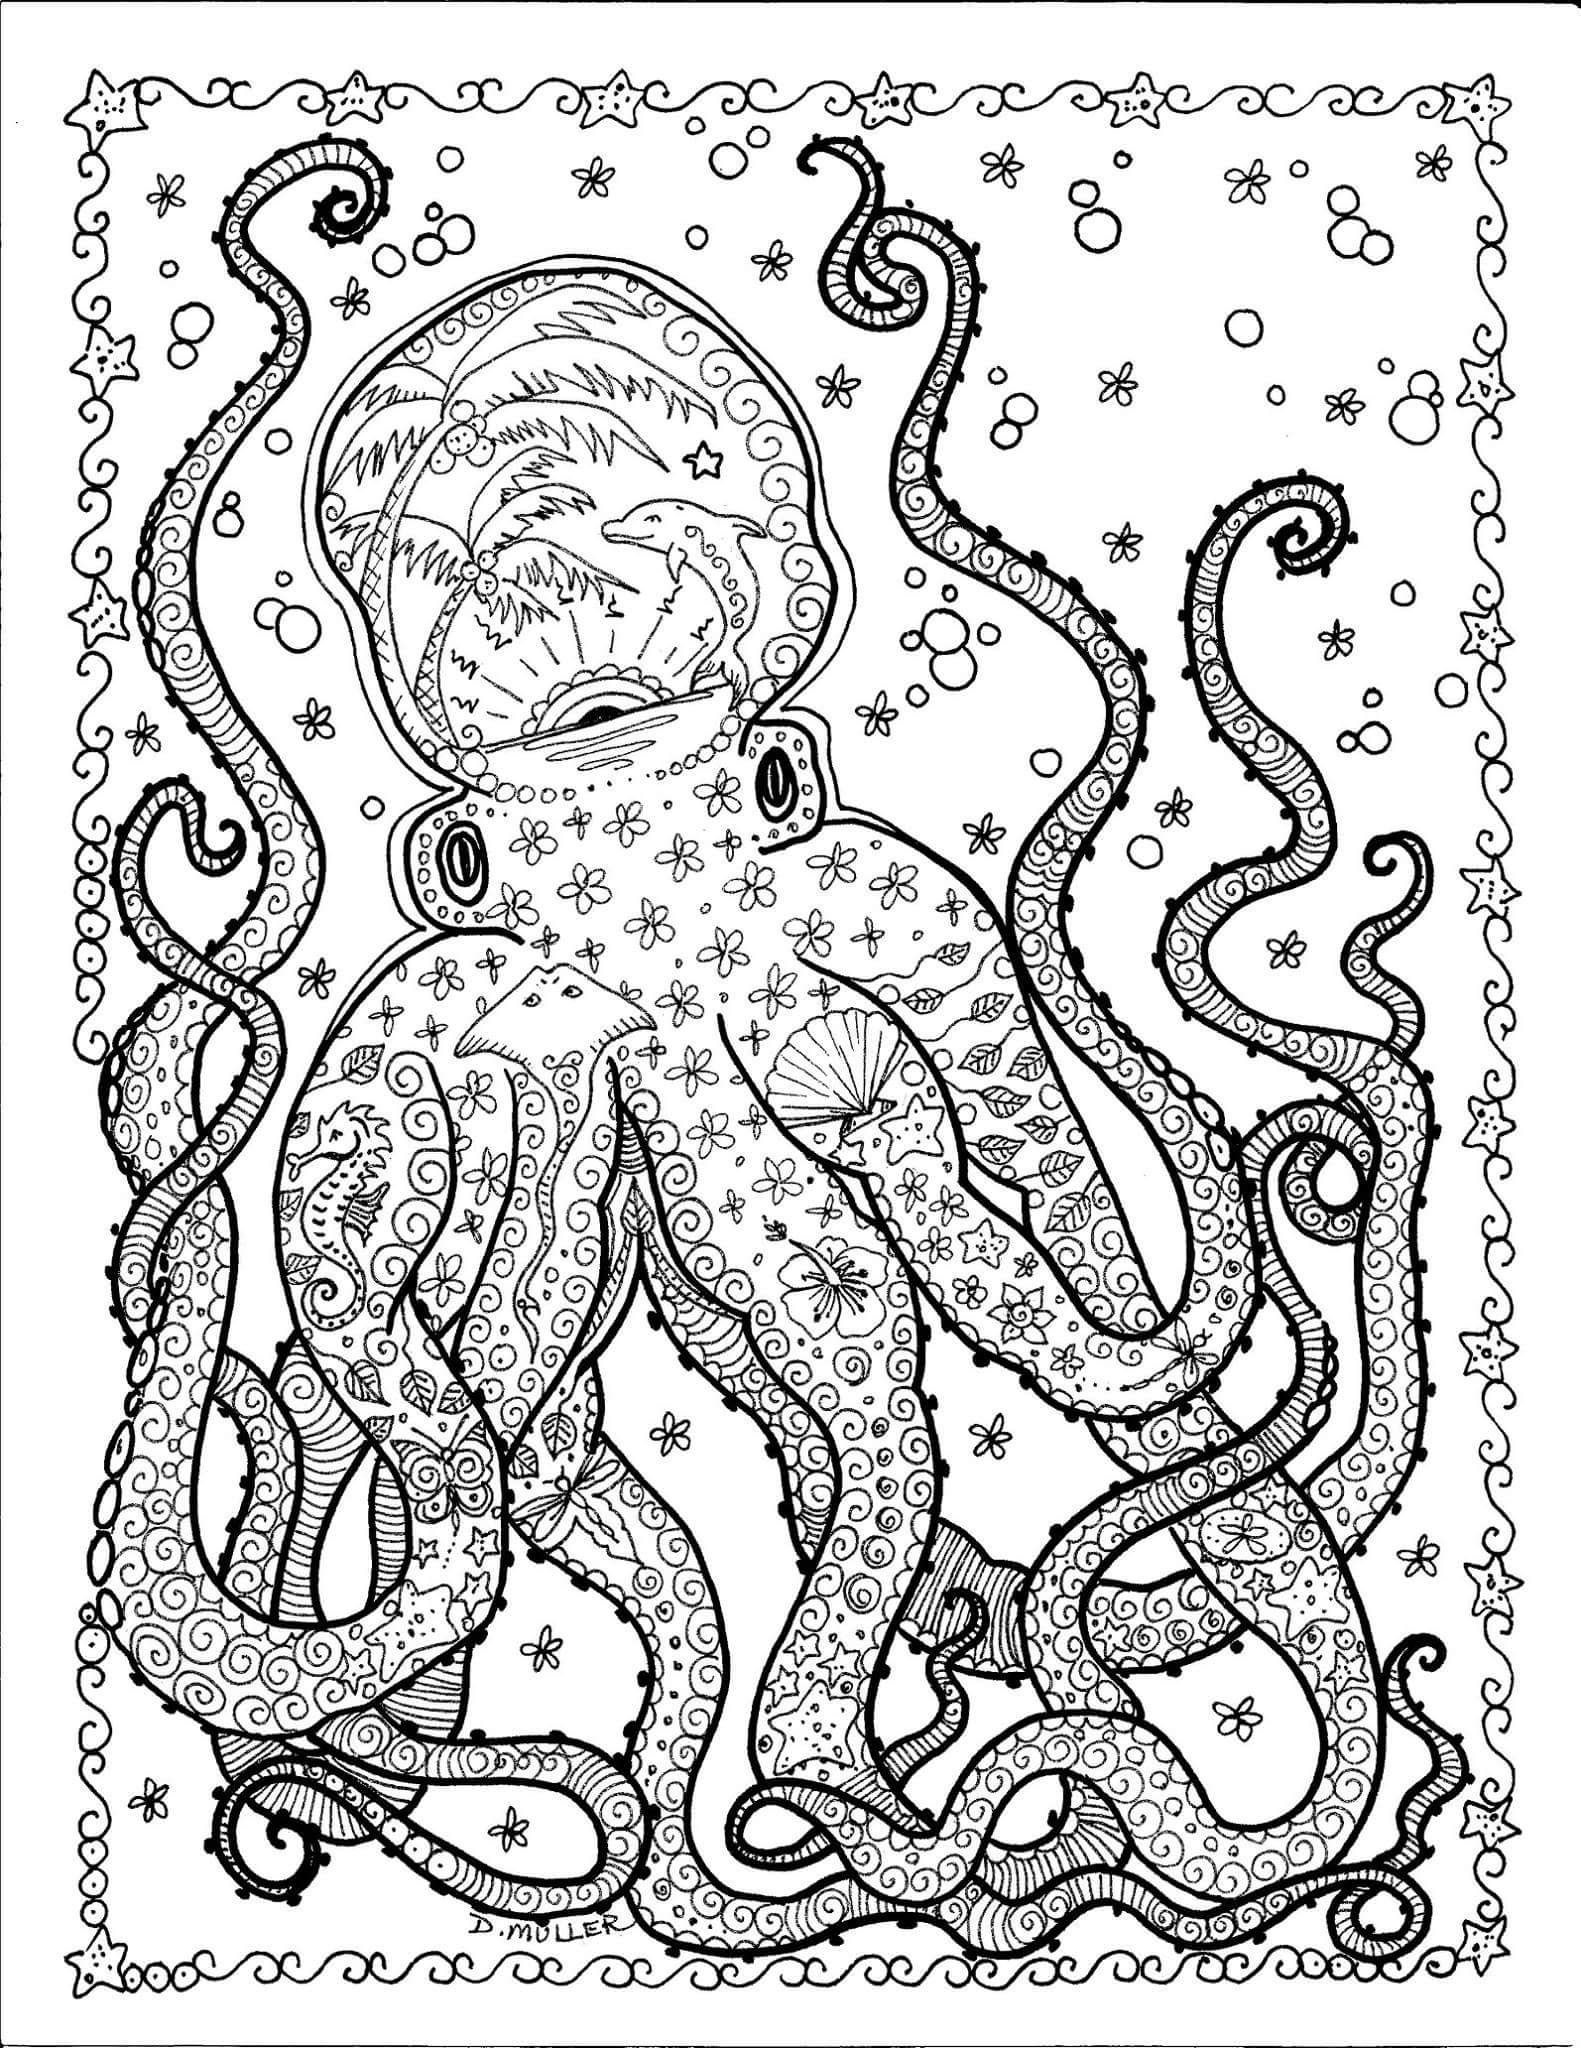 Octopus I Chubbymermaid Art By Deborah Muller Detailed Coloring Pages Ocean Coloring Pages Abstract Coloring Pages